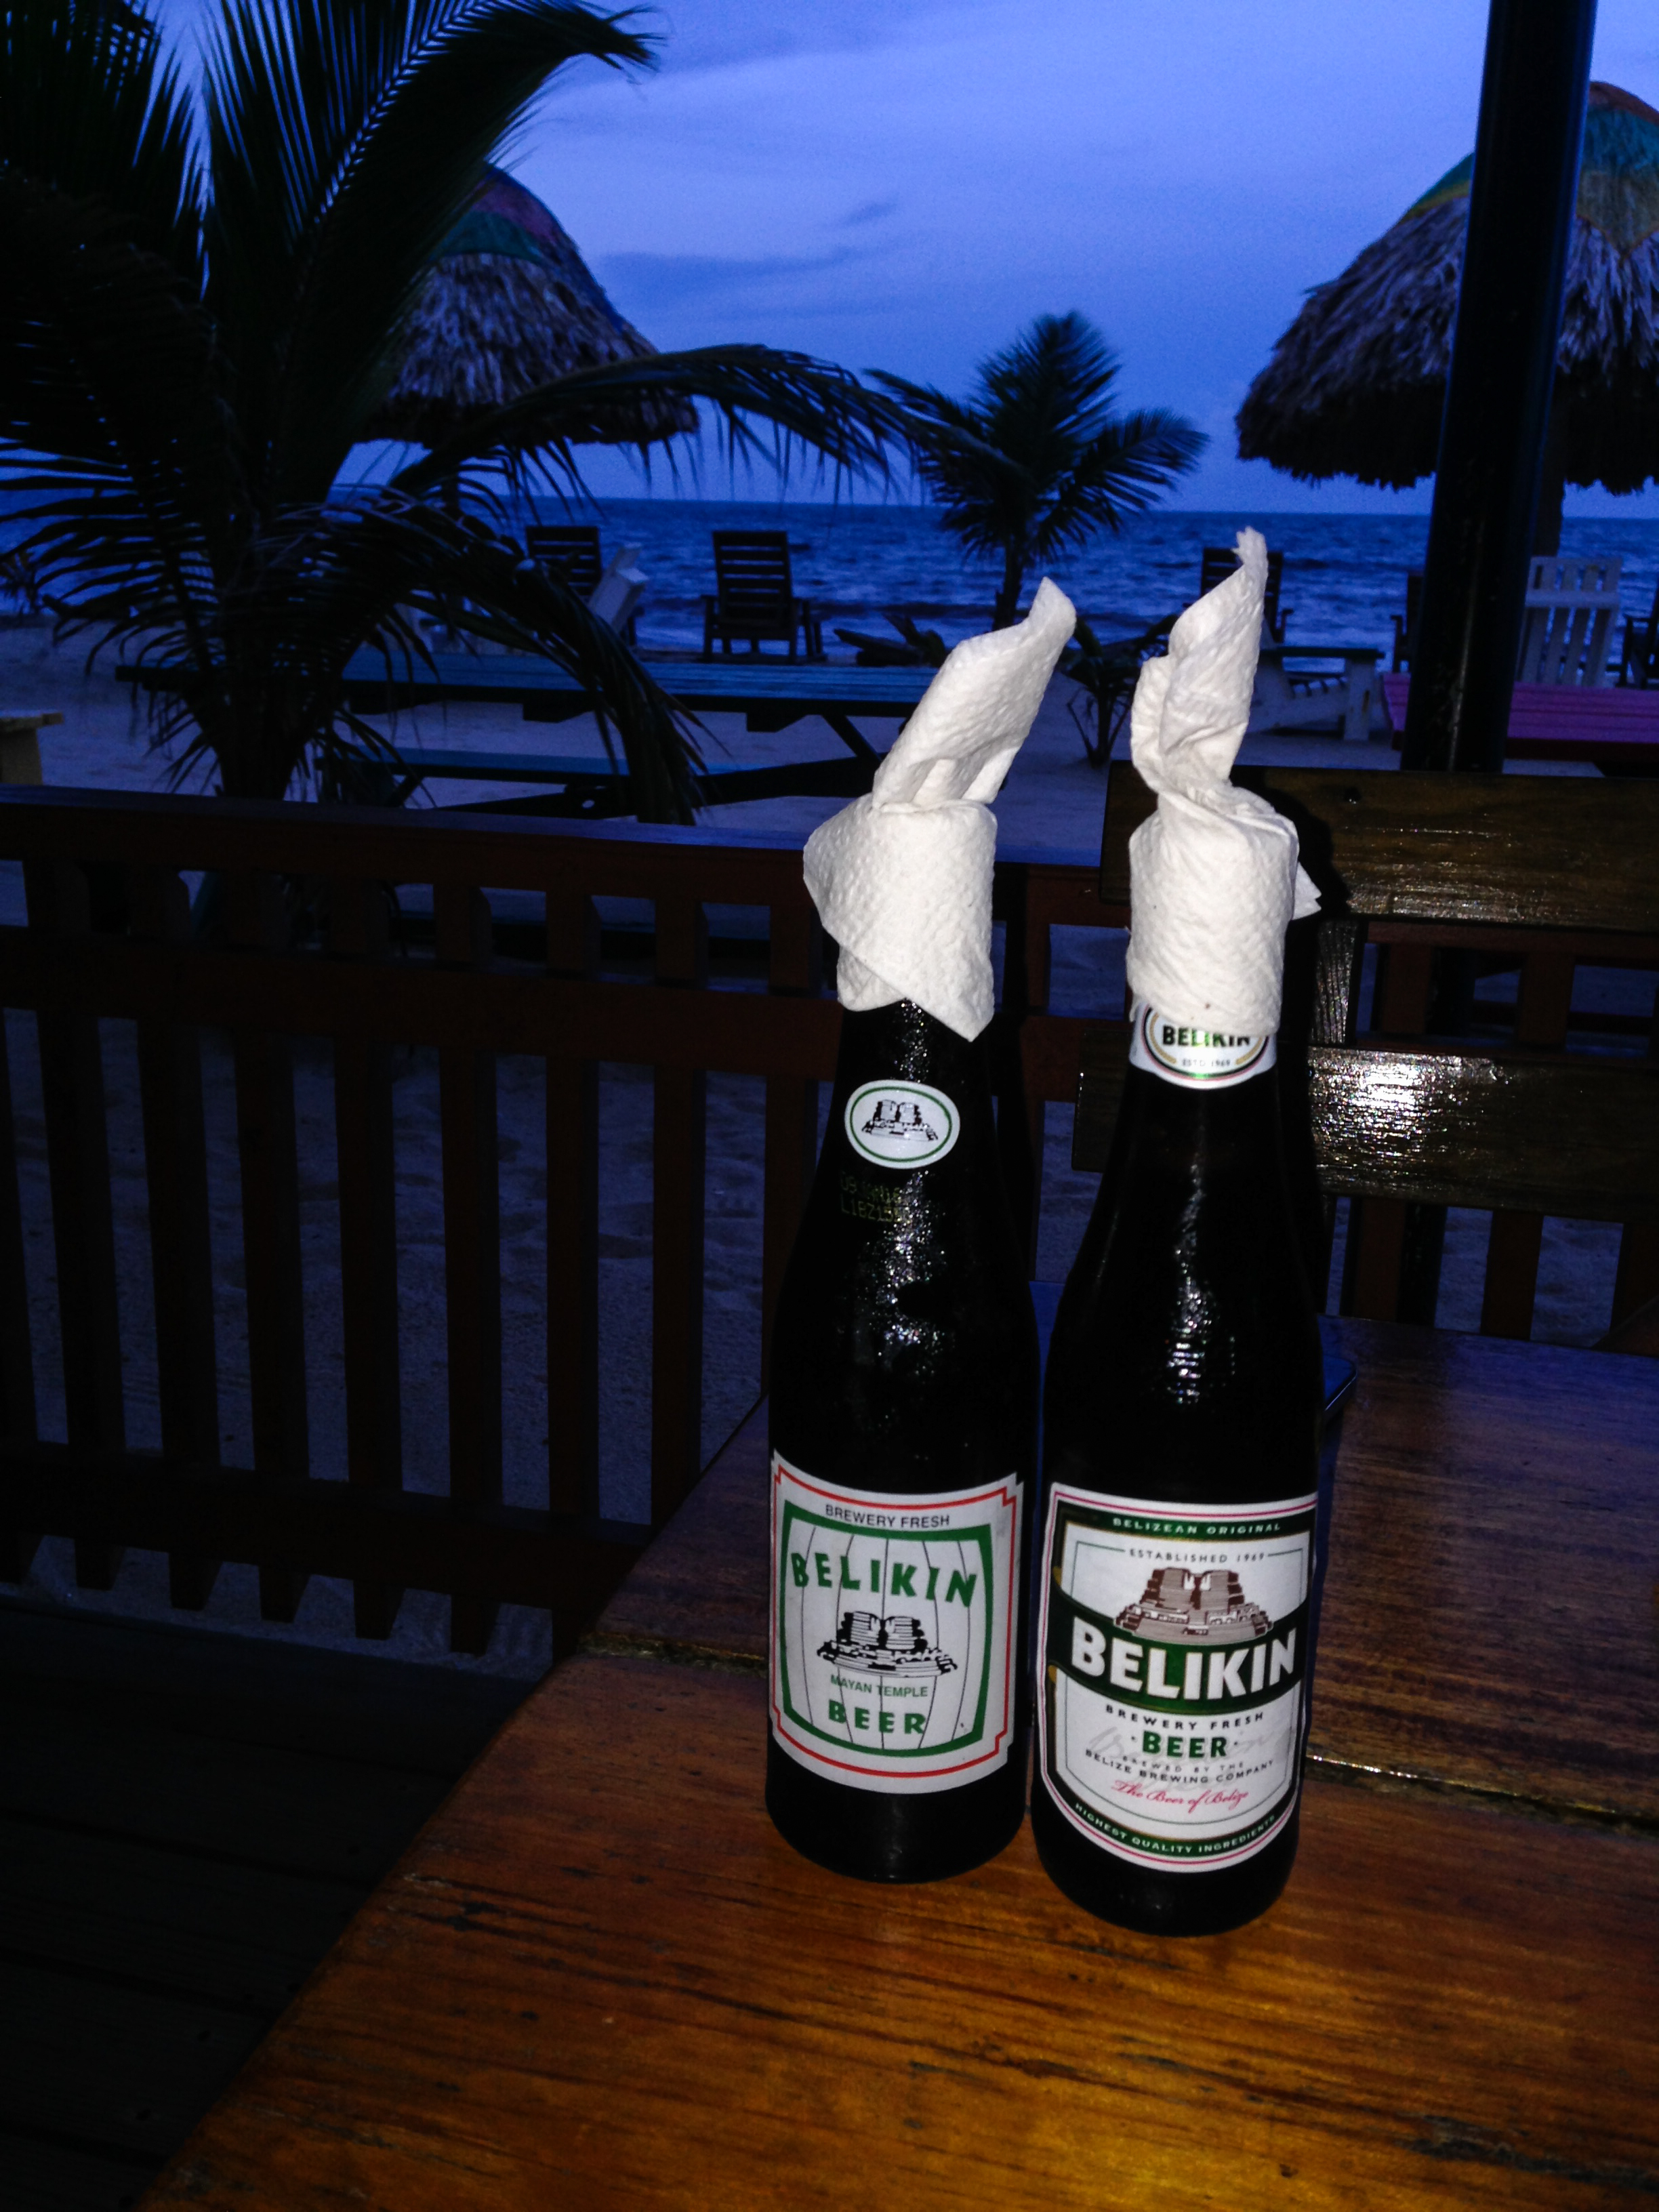 Image result for napkin beer belize